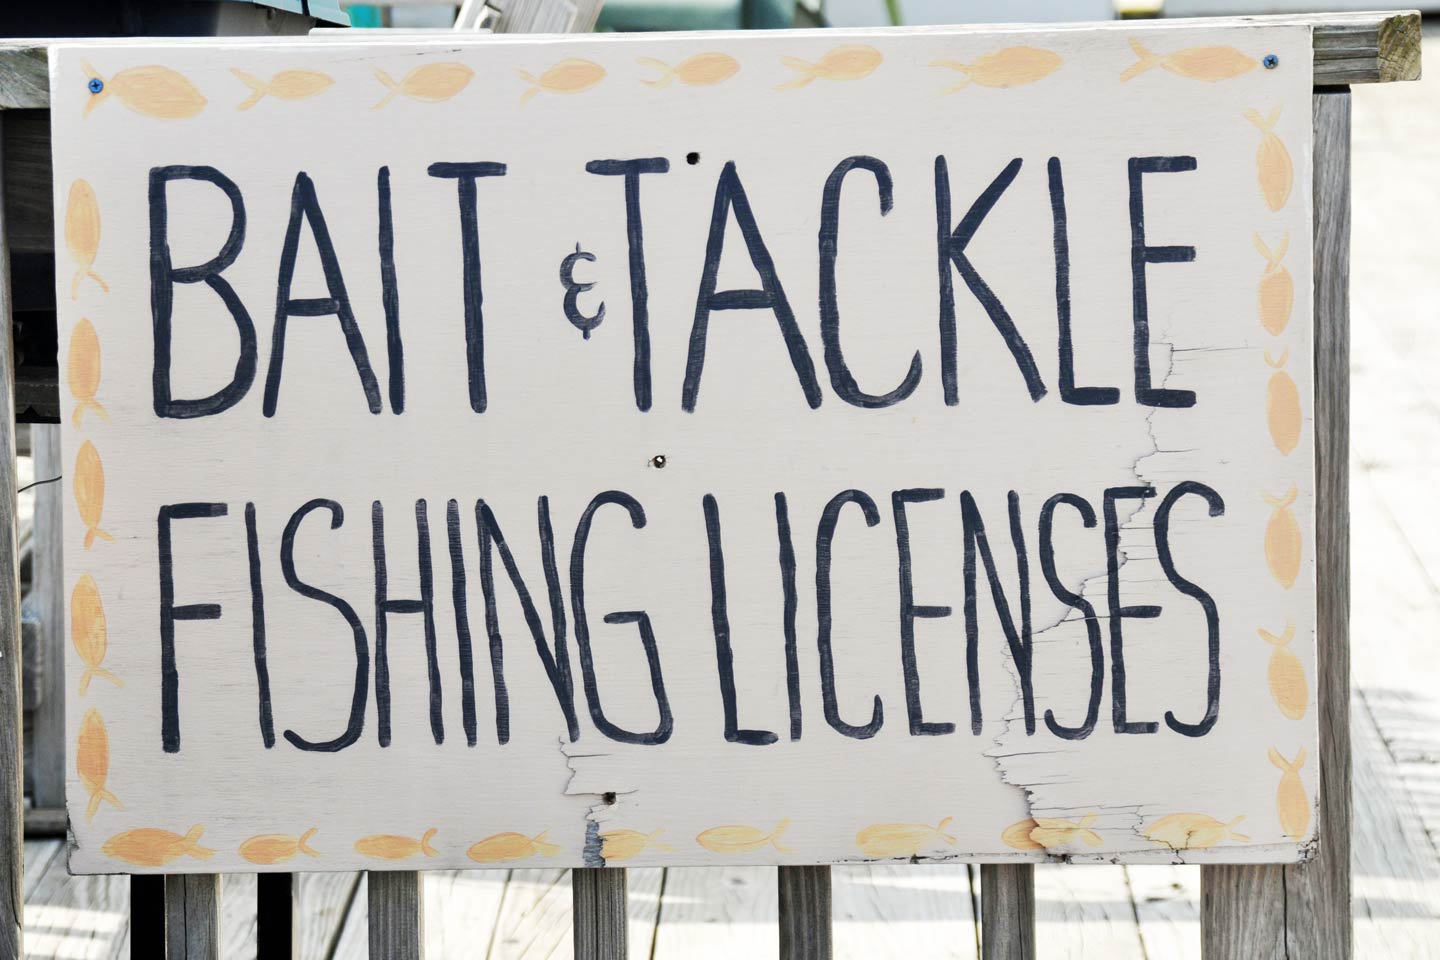 Signage at local Oceanside tackle shop, advertising bait and fishing licenses.